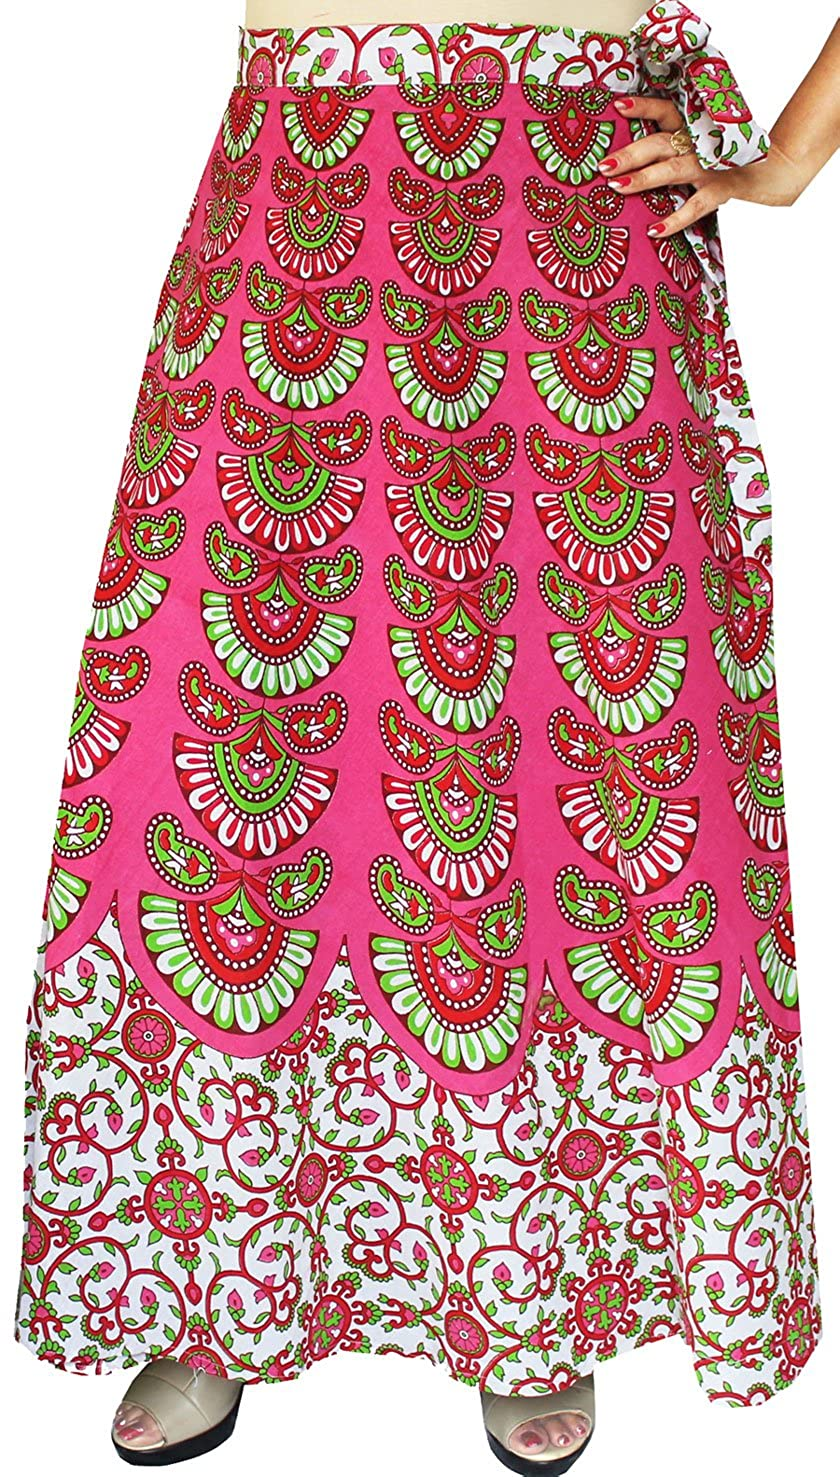 a7158d9b6 Women's Printed Long Indian Cotton Wrap Around Skirts (Pink) at Amazon  Women's Clothing store: